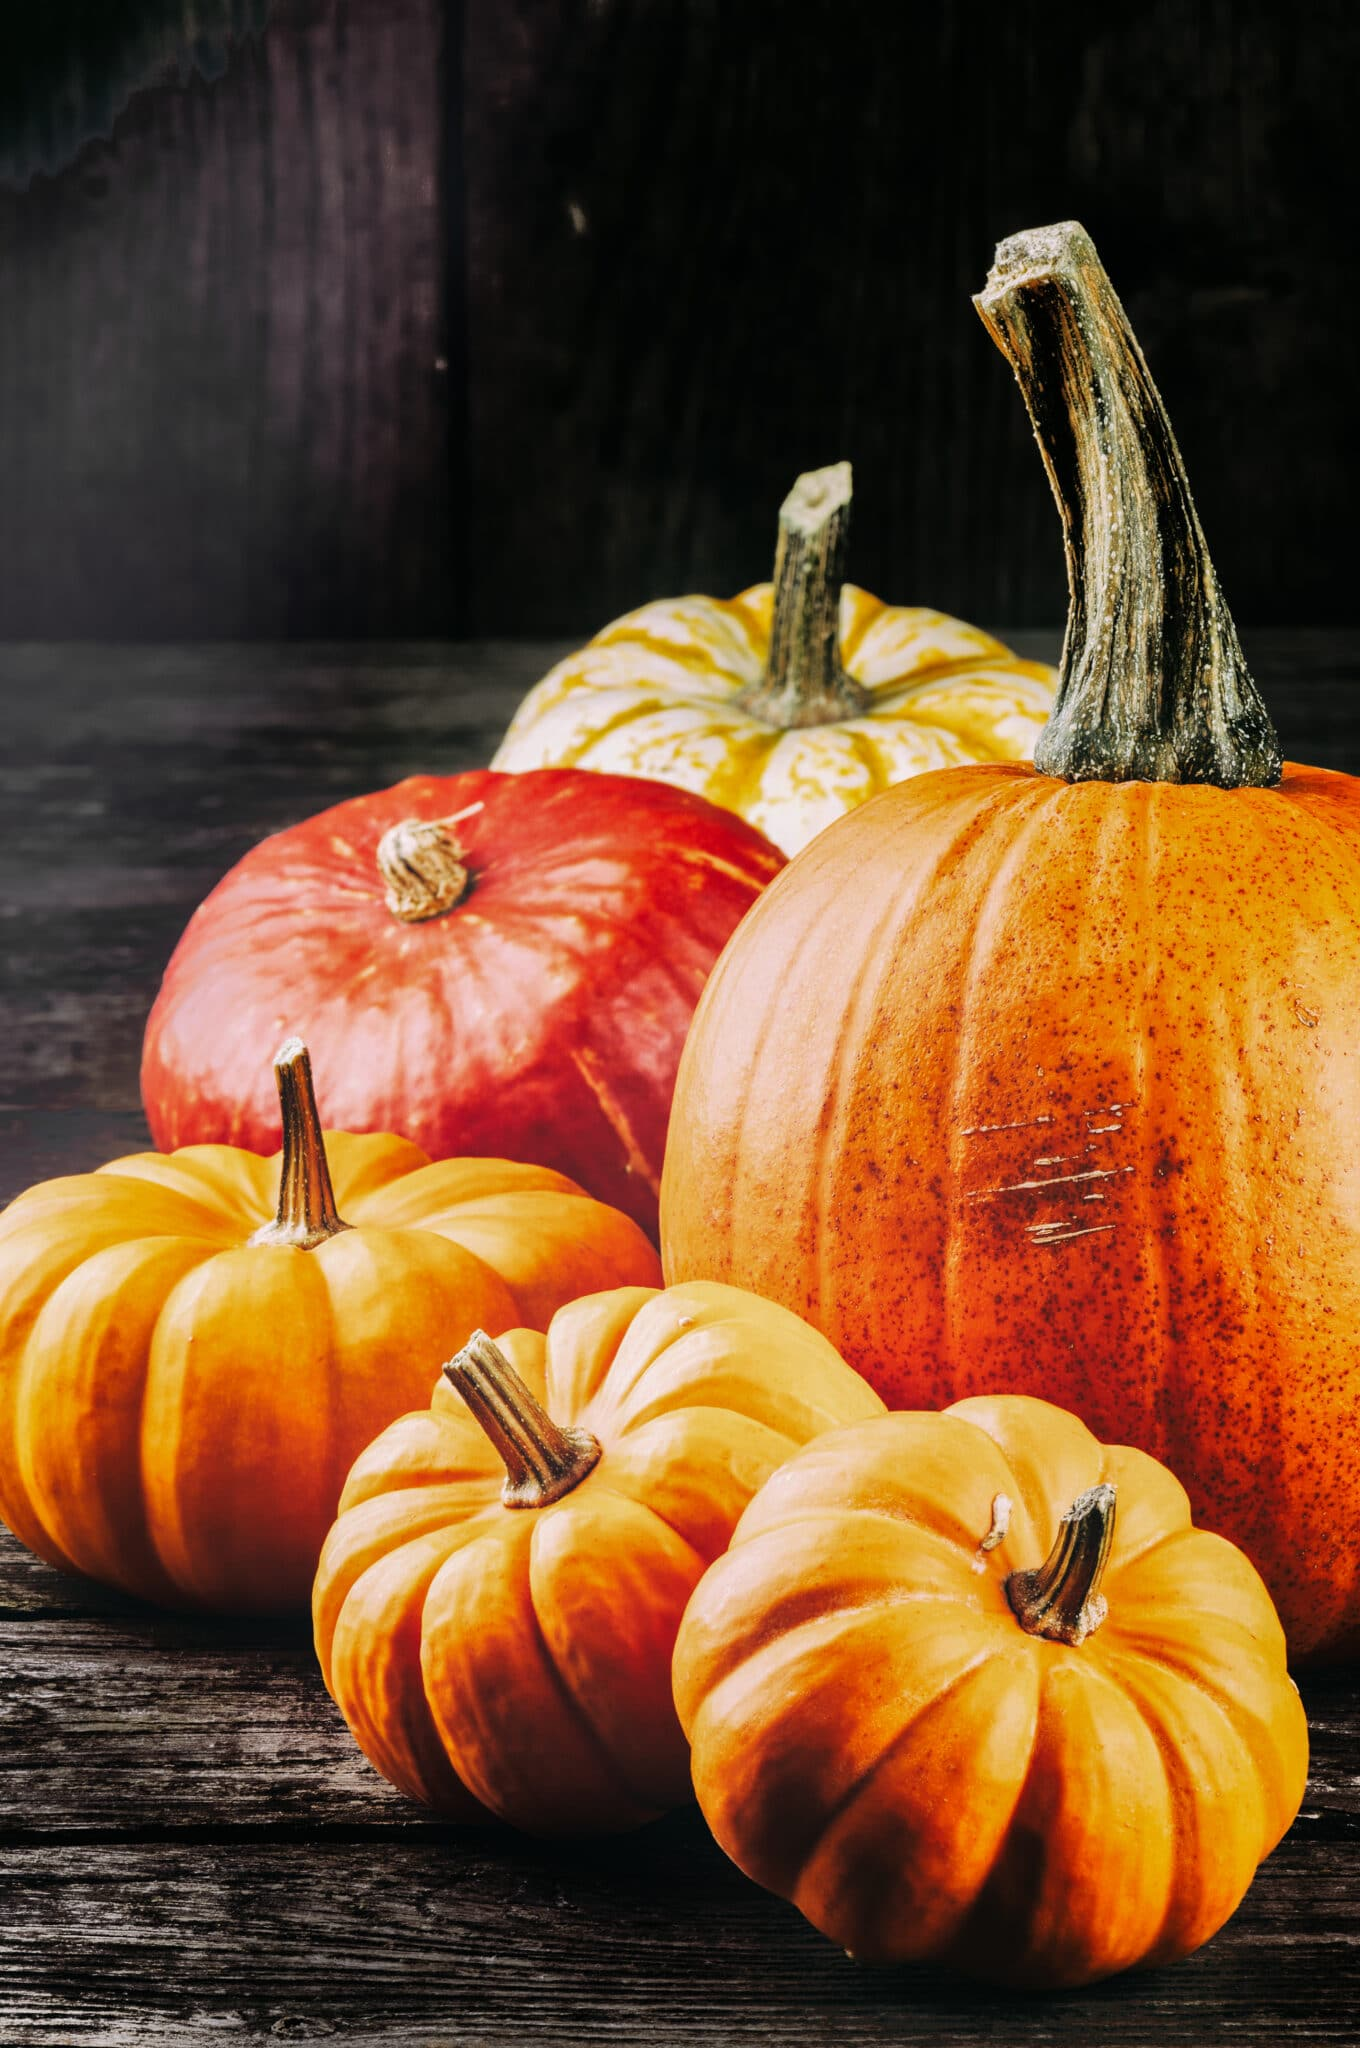 Fresh grown pumpkins (small and large) against a dark moody background.